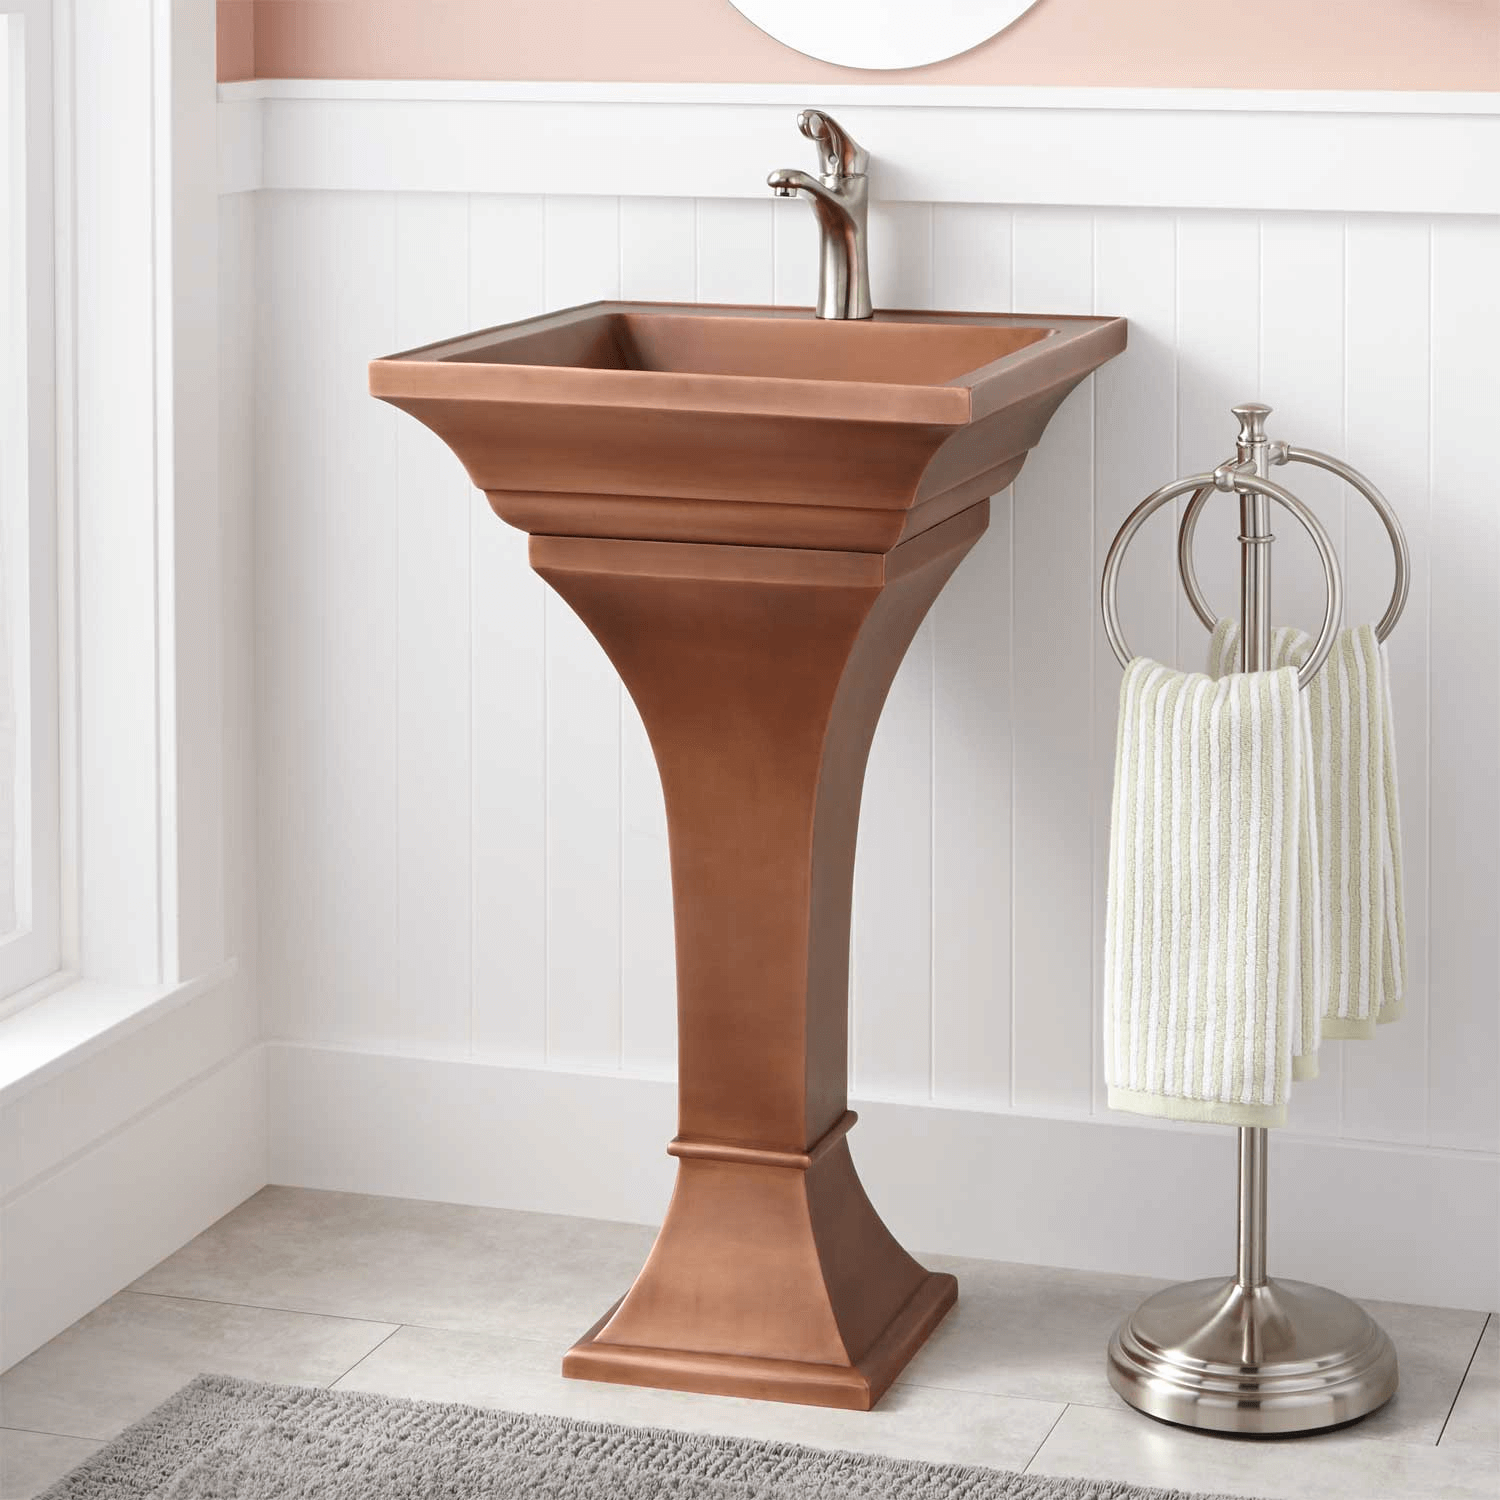 Pedestal Sink Vanity Cabinet The Pros And Cons